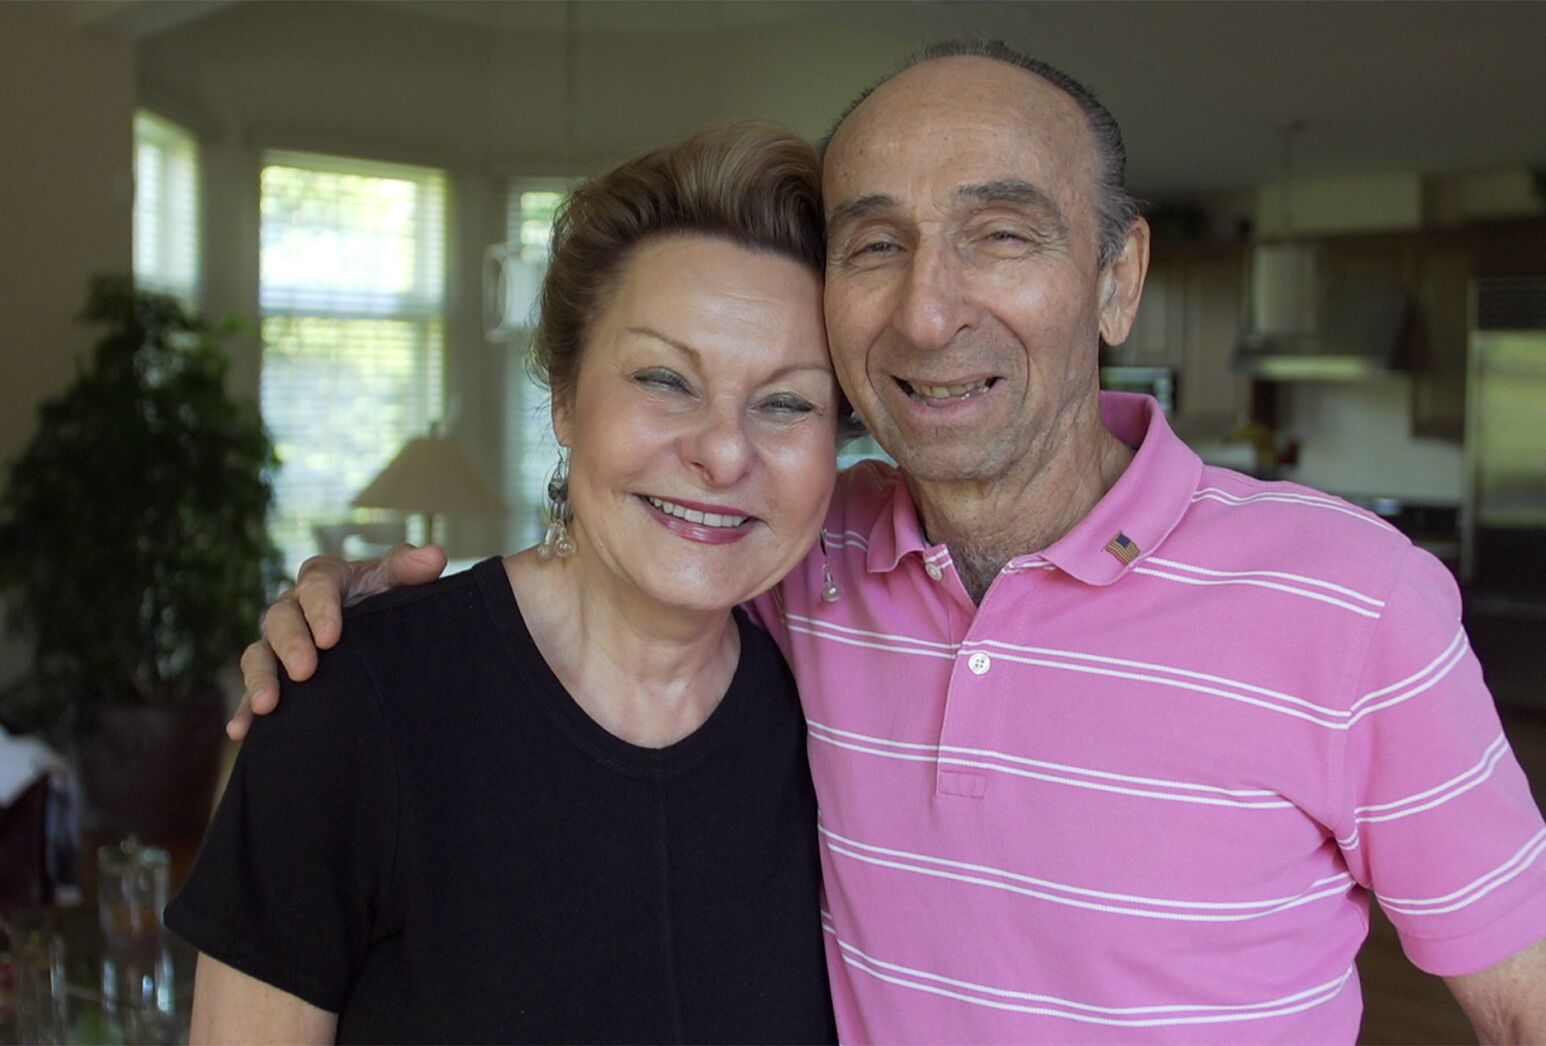 Older couple, woman in a black shirt and man in a pink shirt.